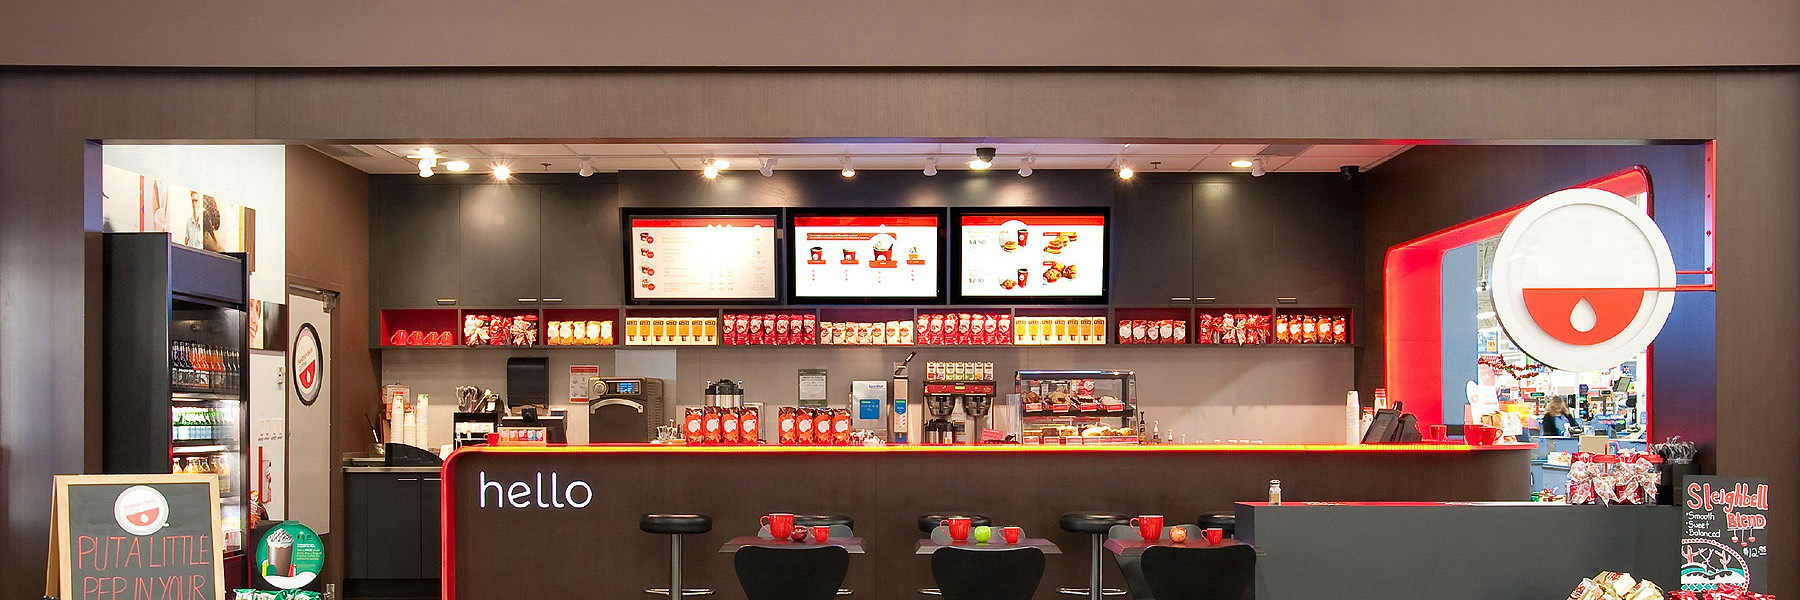 digital Signage restaurants